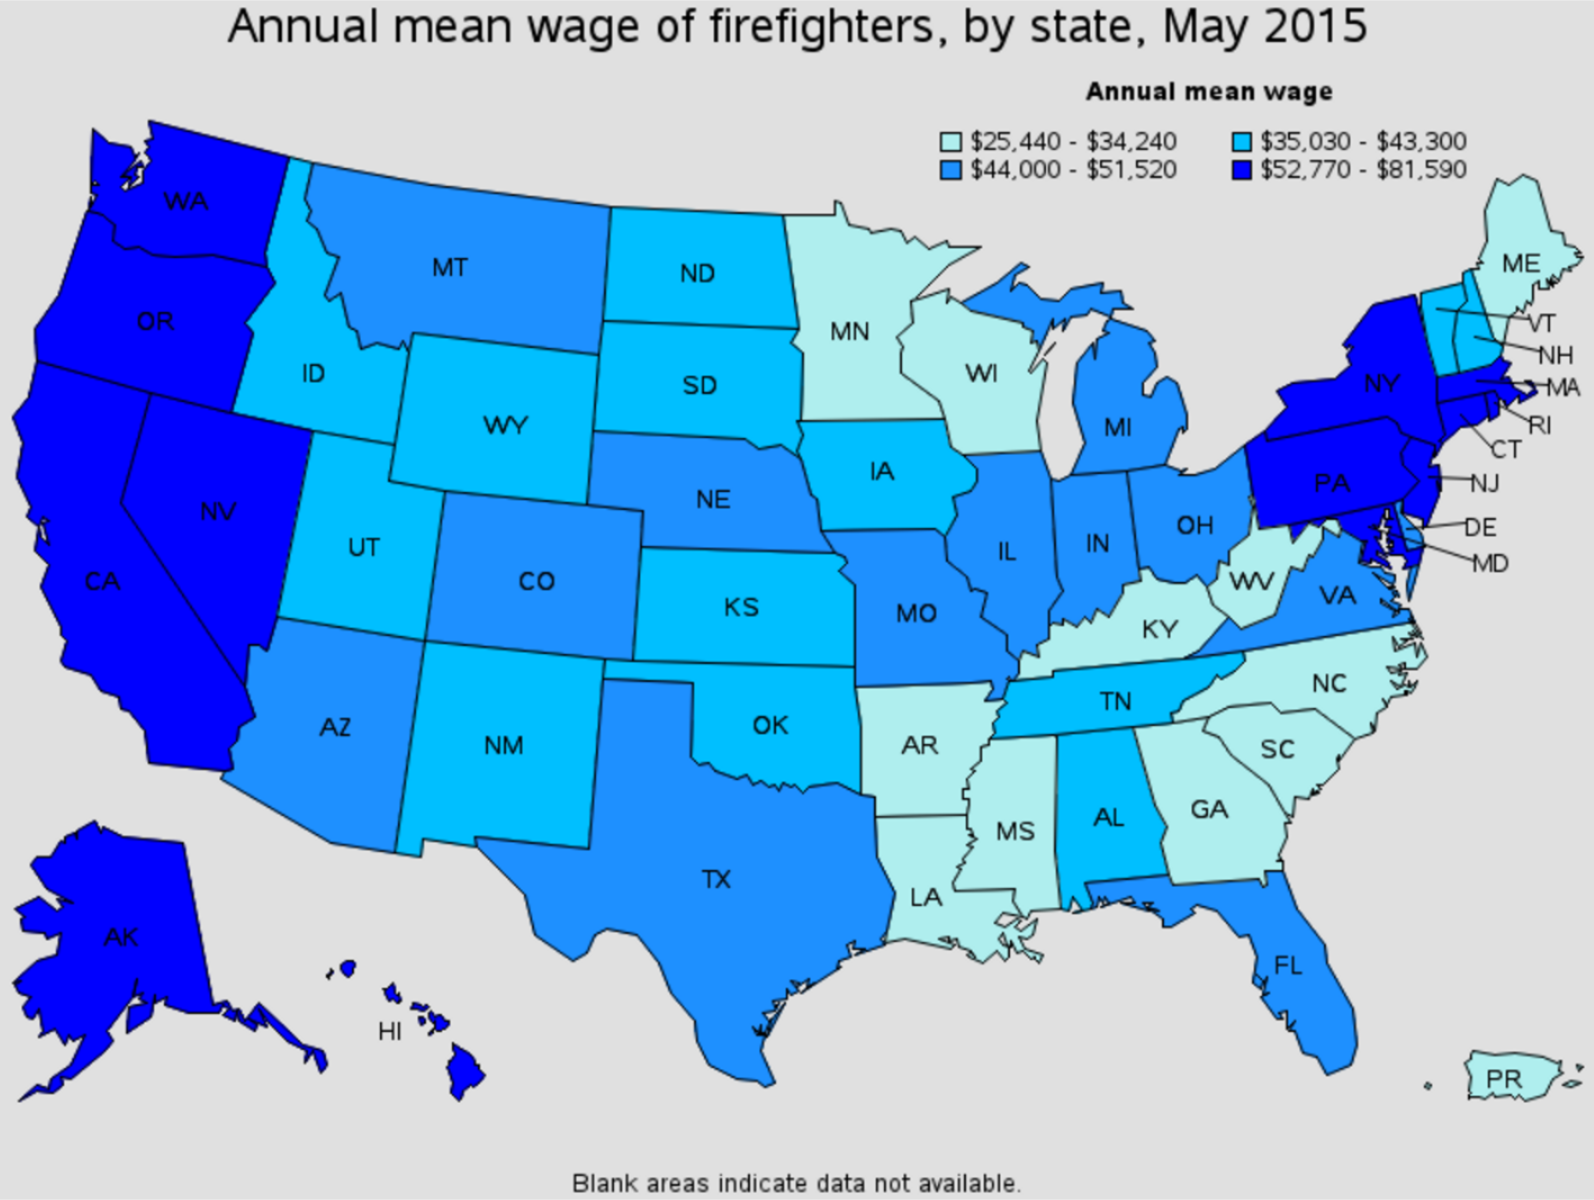 firefighter average salary by state Detroit Michigan